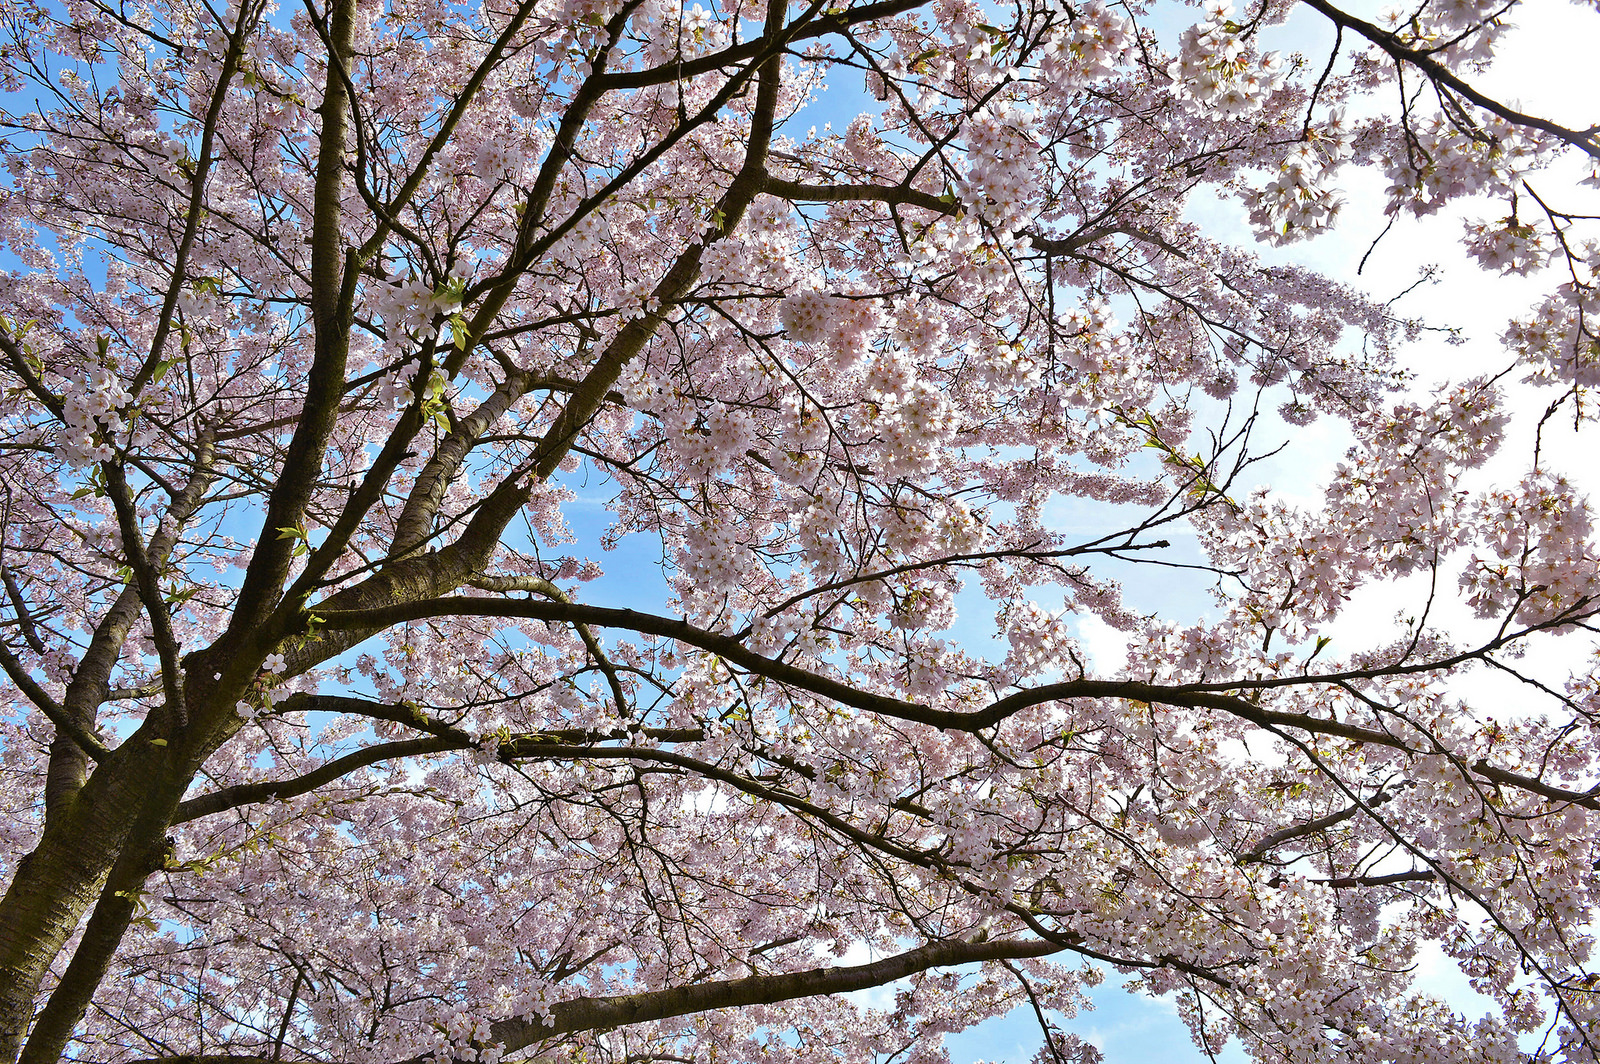 Cherry trees in full bloom (Holland).